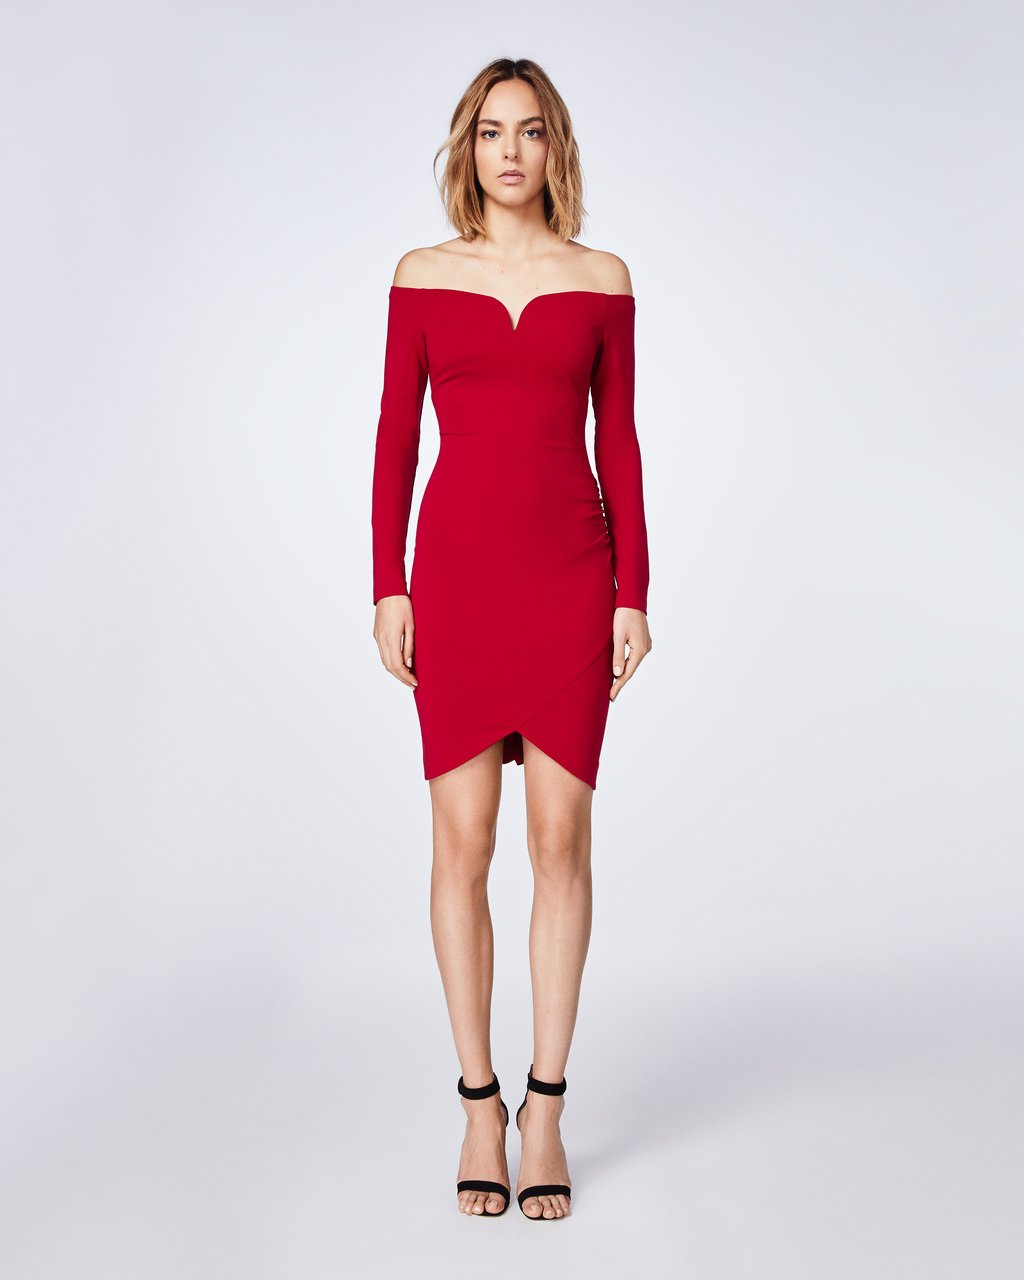 style_bt10117_color_red_01_1024x.jpg